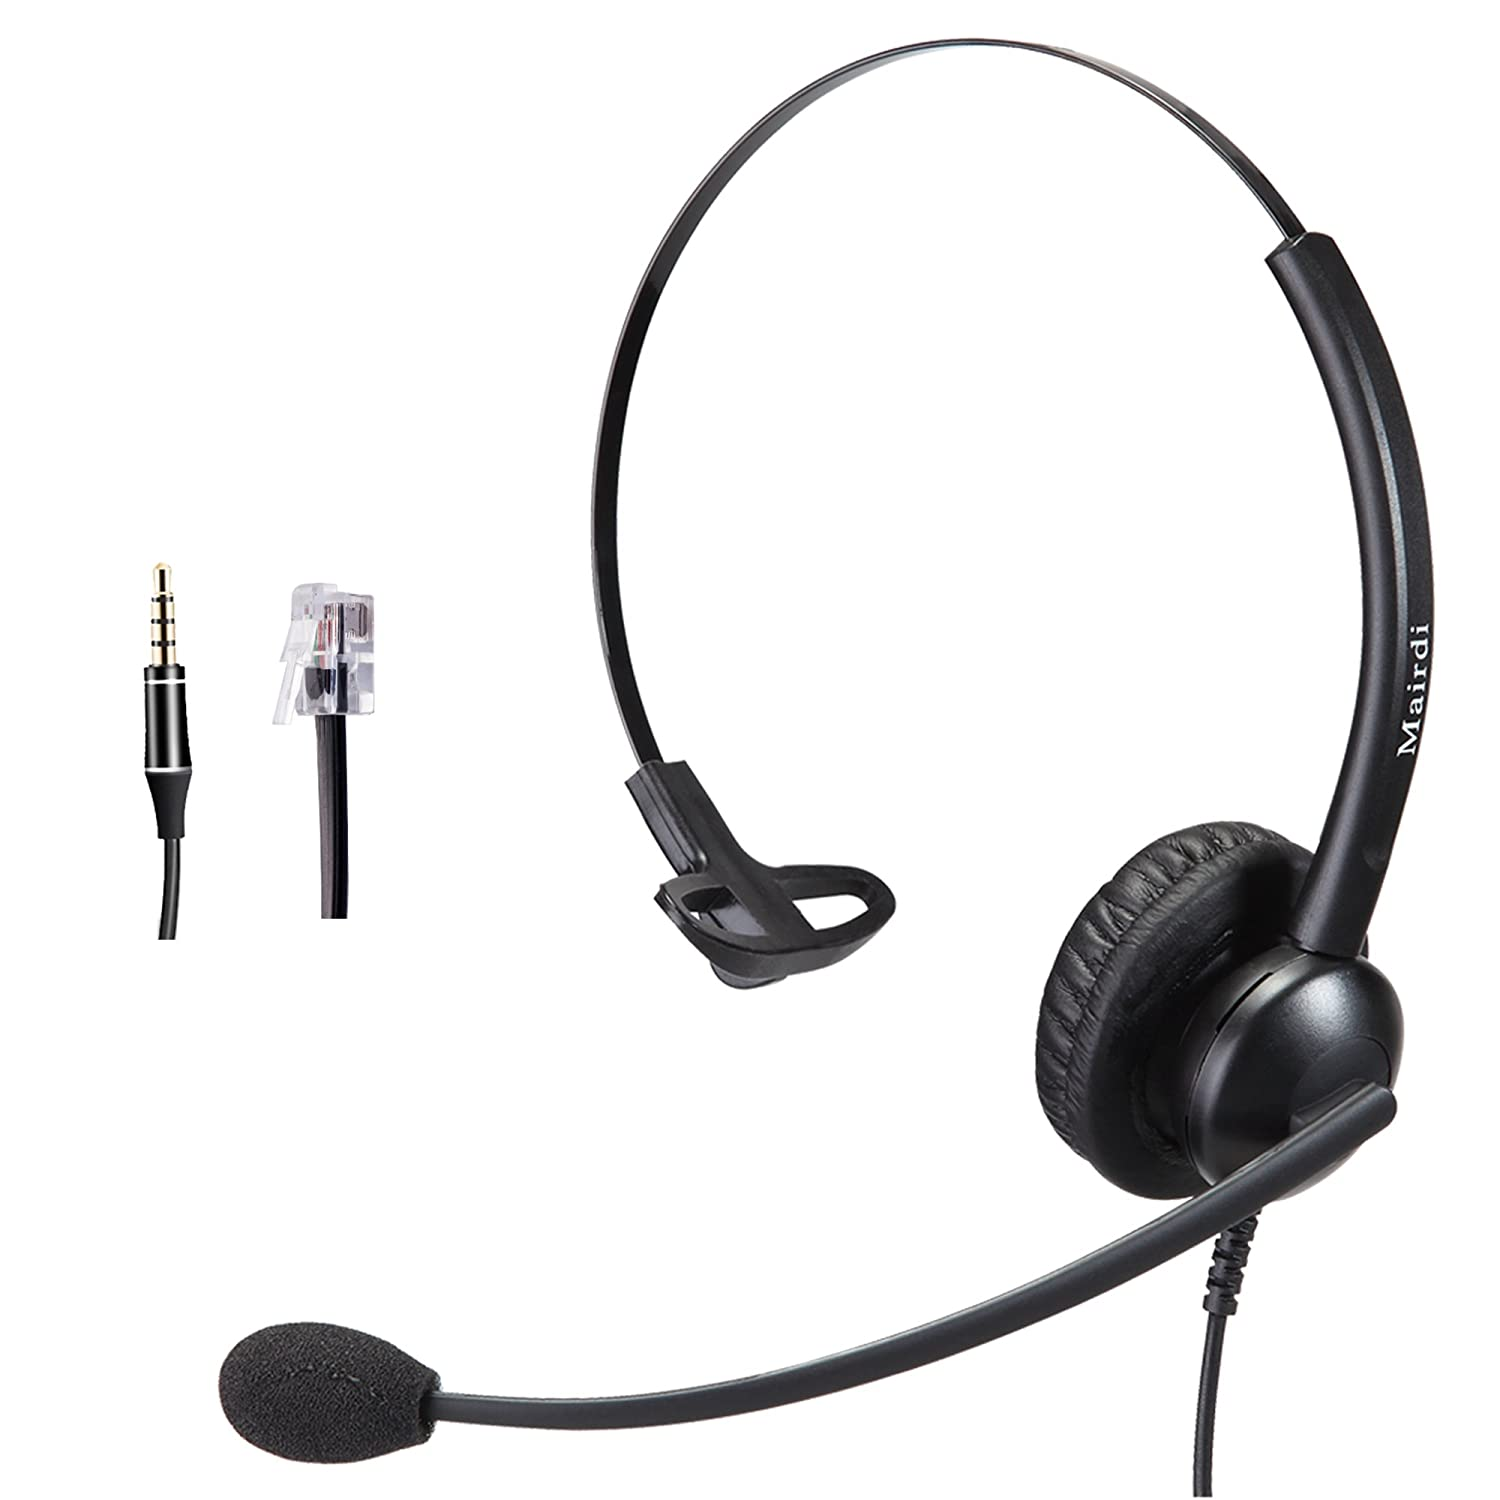 cisco headset rj9 phone for ip with noise cancelling. Black Bedroom Furniture Sets. Home Design Ideas